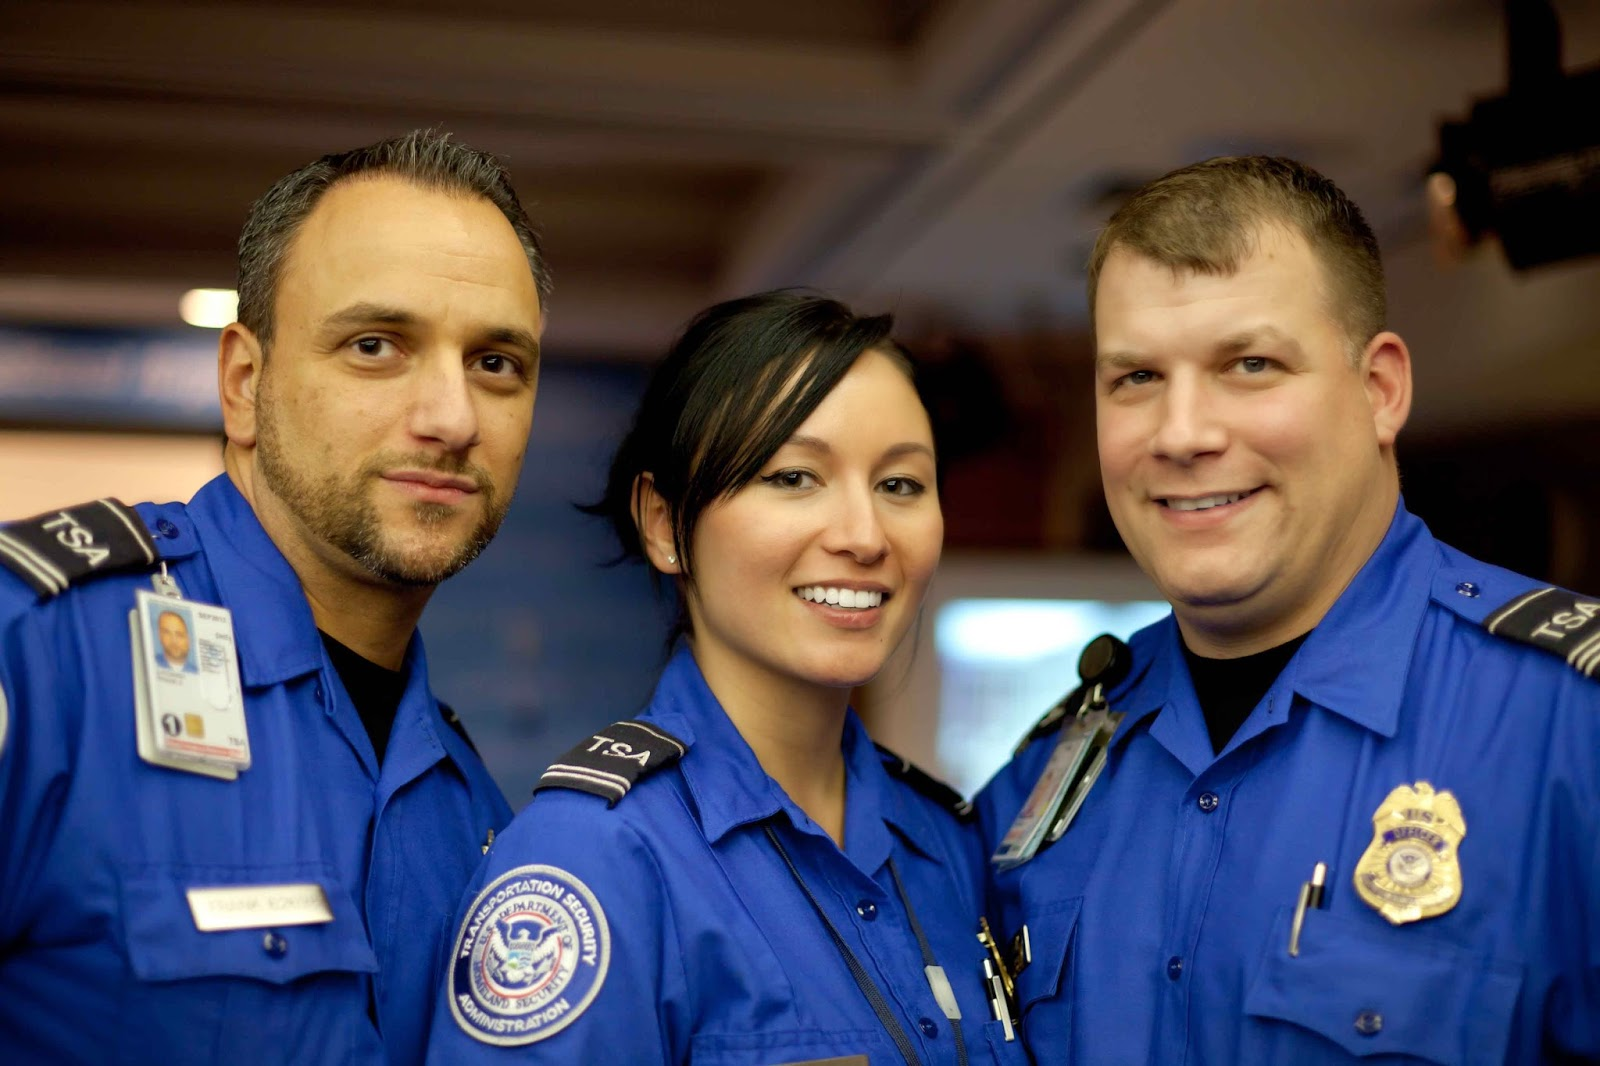 transportation security officers - Transportation Security Officer